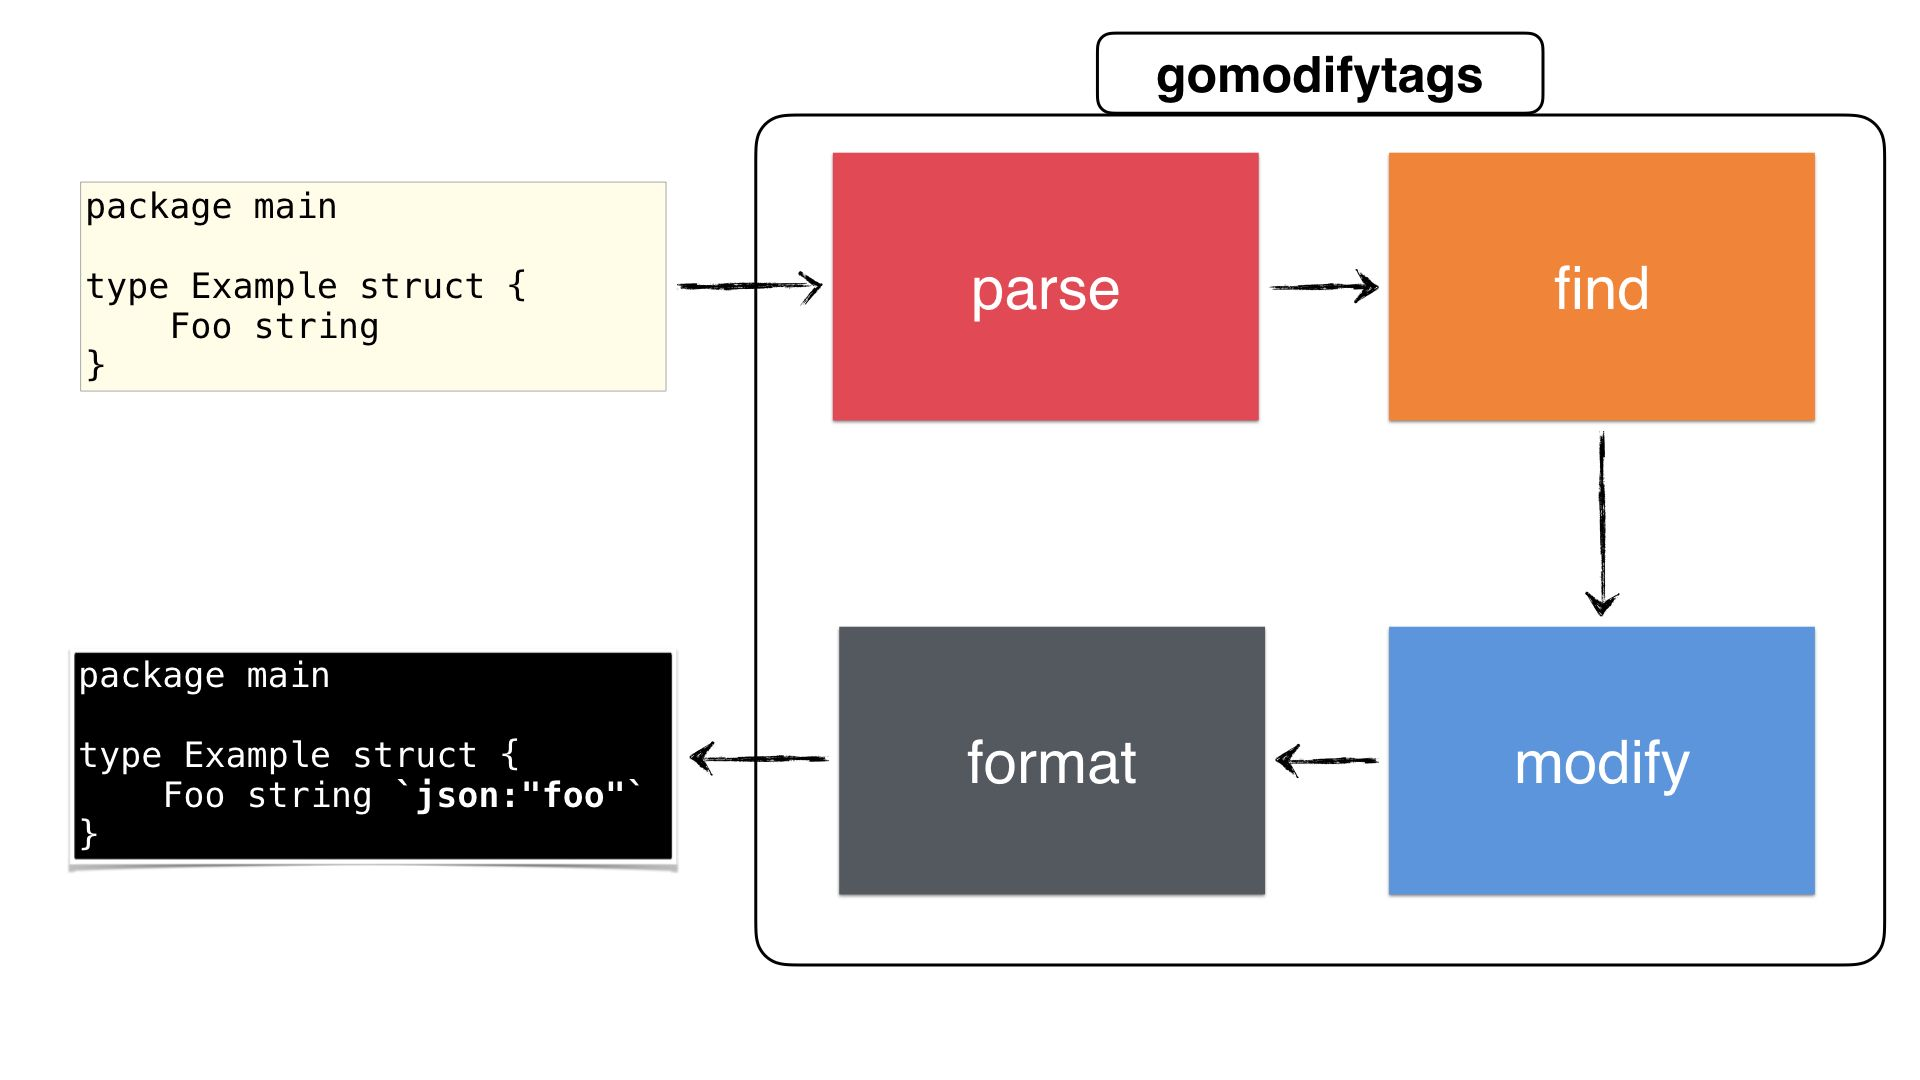 **An overview of gomodifytags**